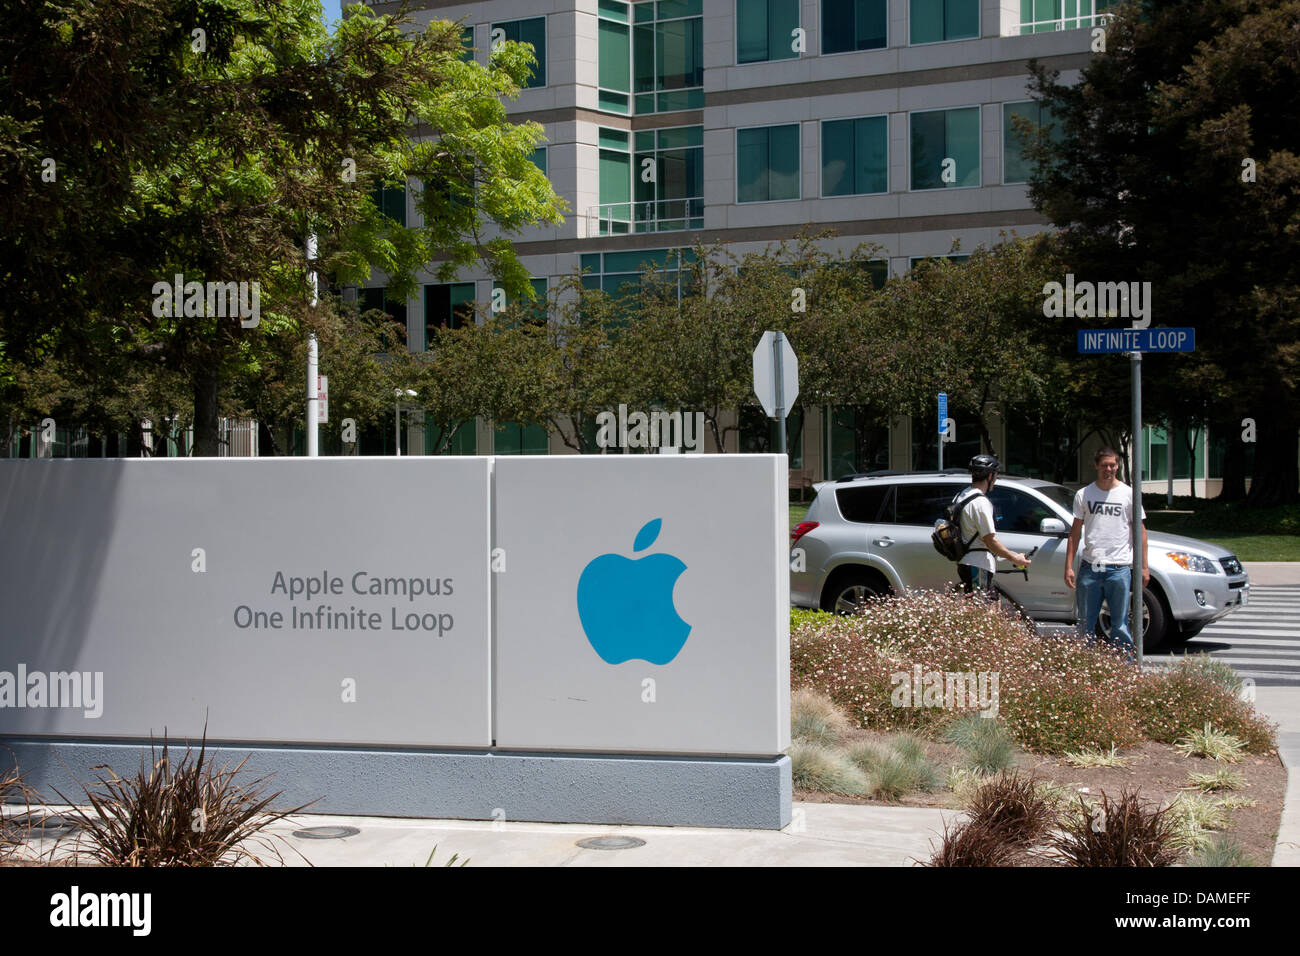 apple new head office. A Sign Features The Infinite Loop 1 Building At Head Quarters Of Apple In Cupertino, California, USA, 09 May 2011. CEO Apple, Steven Jobs, New Office